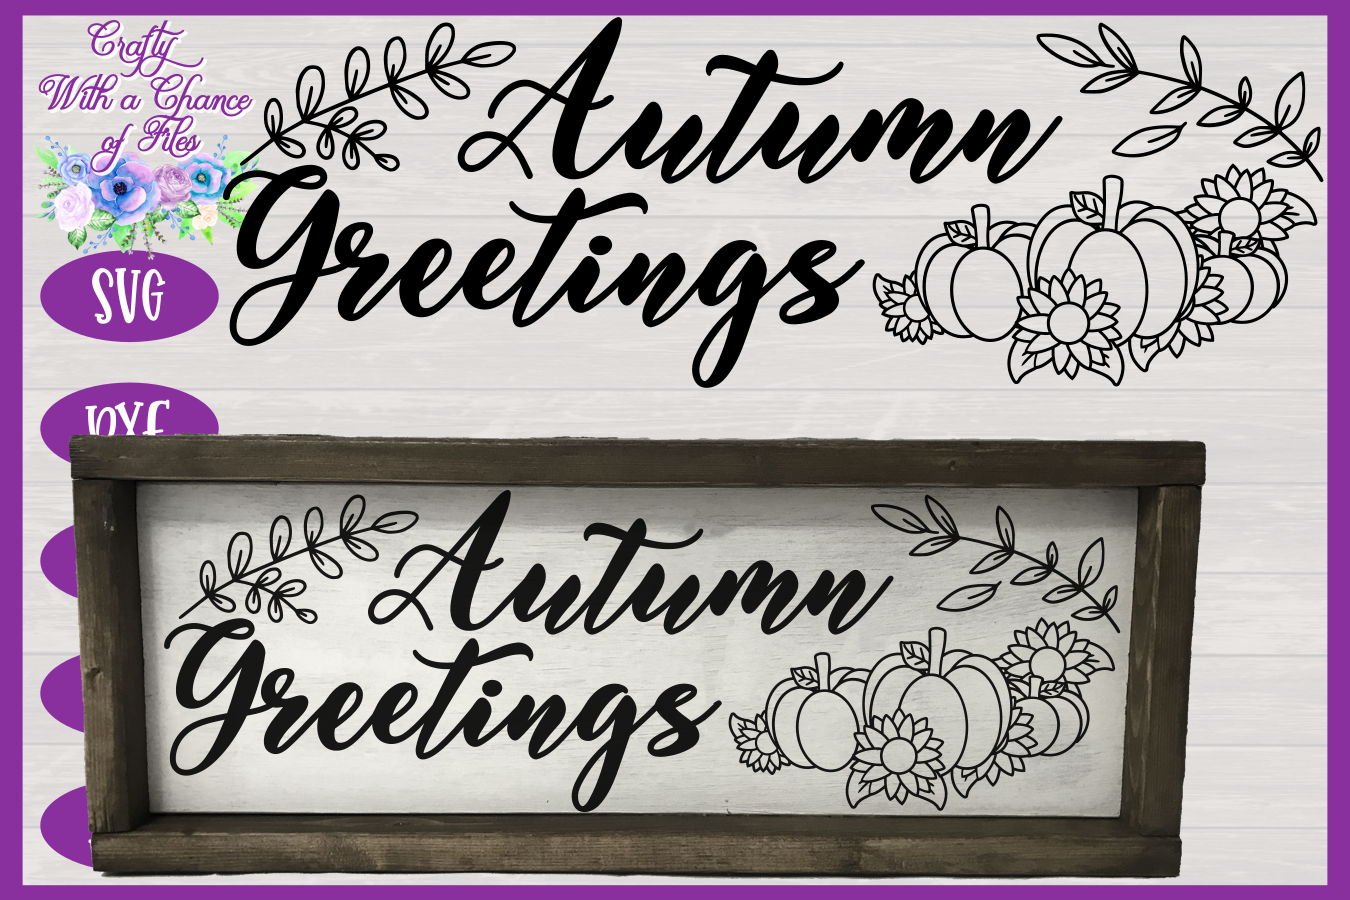 Autumn Greetings SVG | Autumn Sign SVG | Fall Farmhouse SVG example image 1